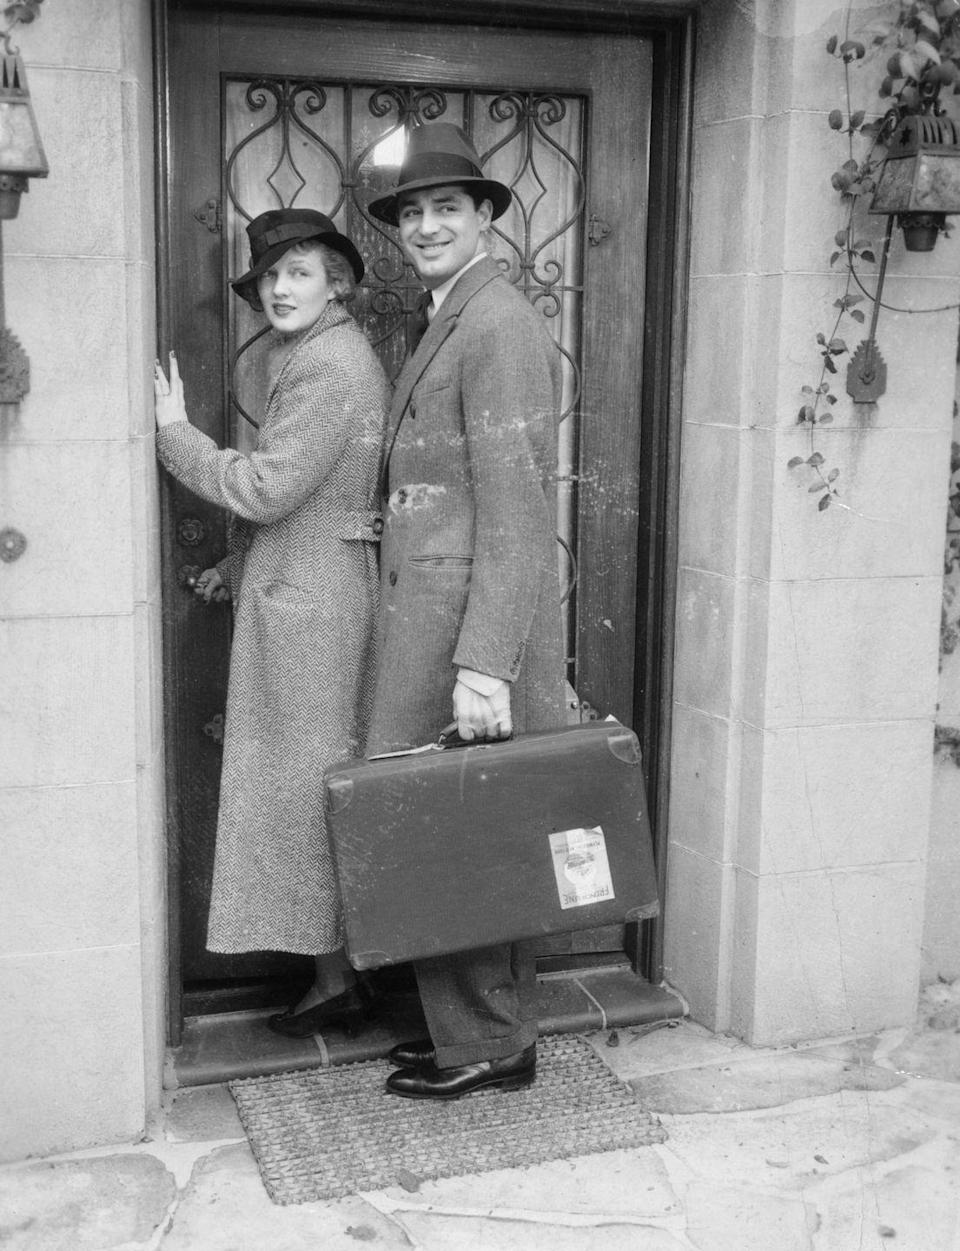 <p>American actors Cary Grant and Virginia Cherrill arrive in Rome for their honeymoon, circa 1934.</p>